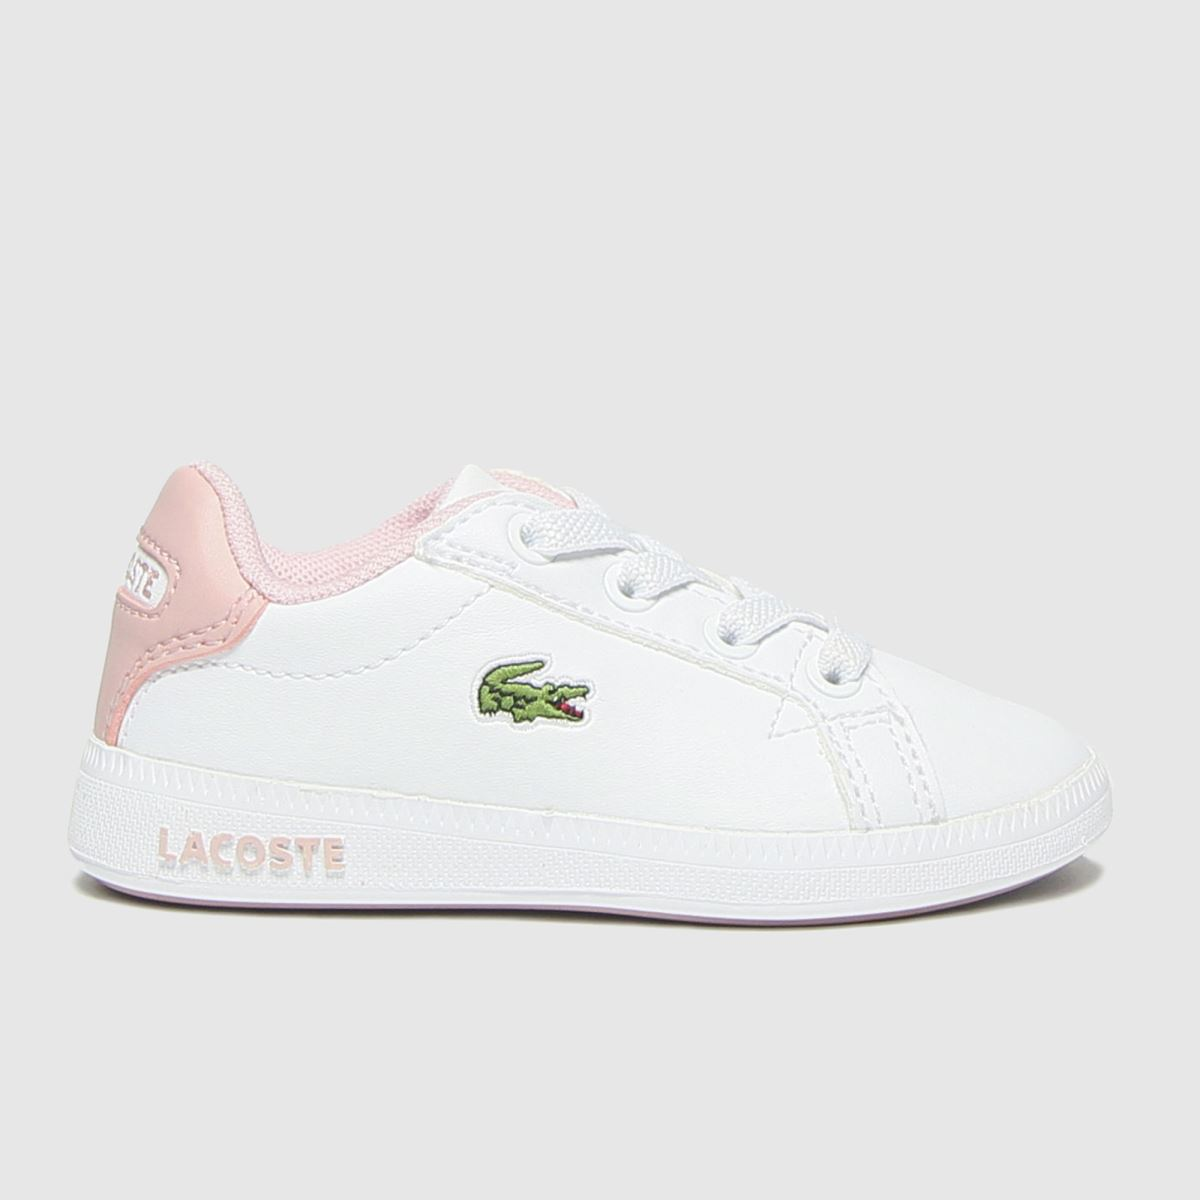 Lacoste White & Pink Graduate Trainers Toddler